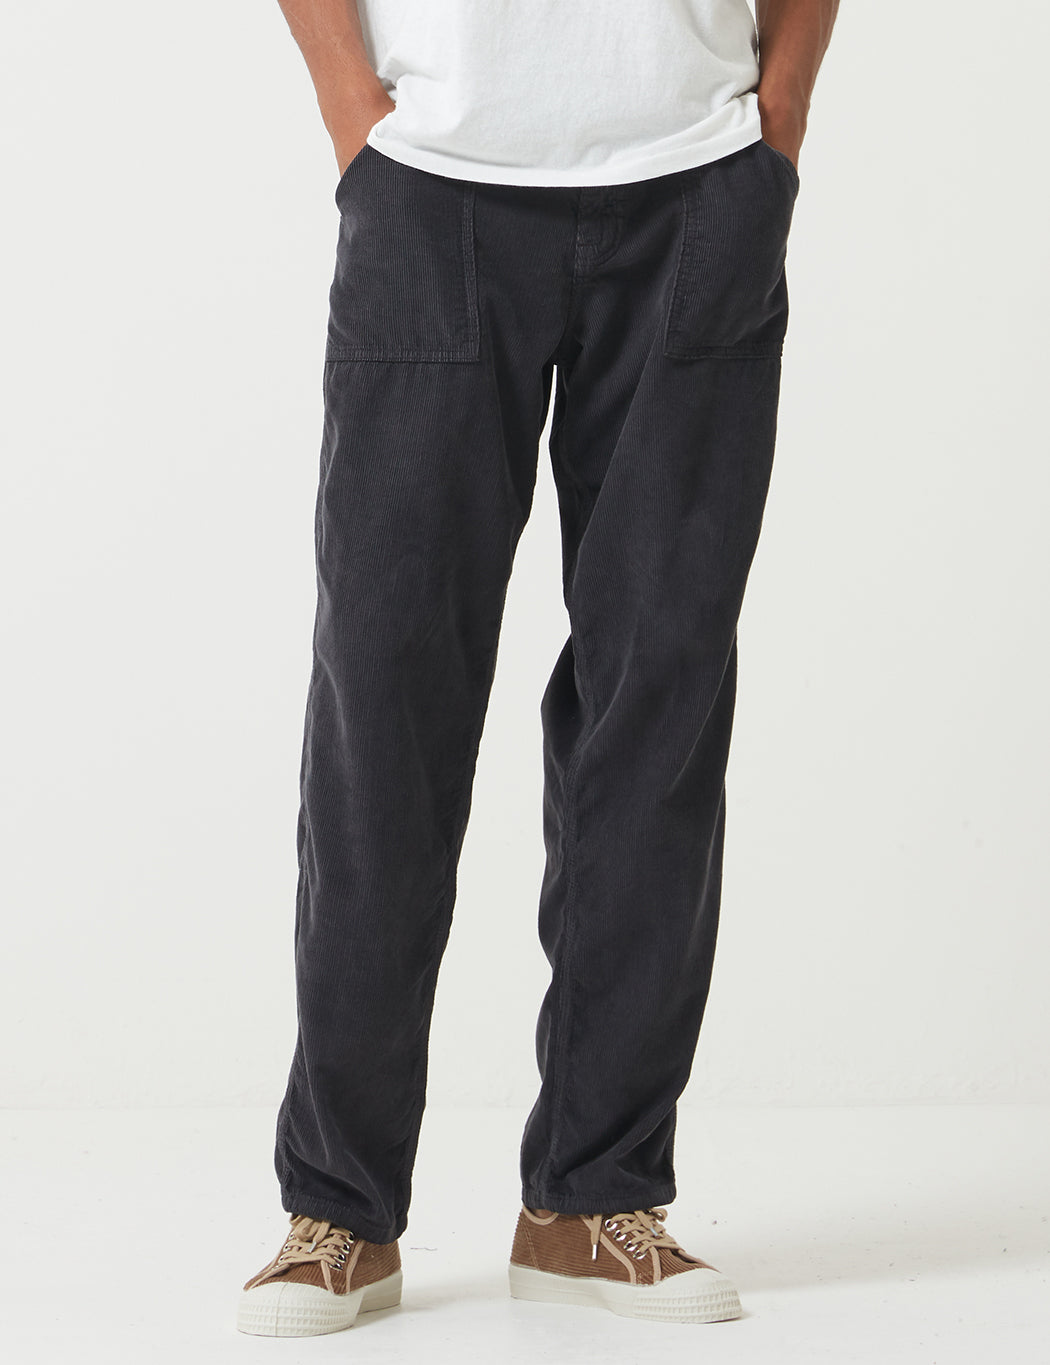 Stan Ray Fatigue Cord Pant (Taper) - Navy Blue